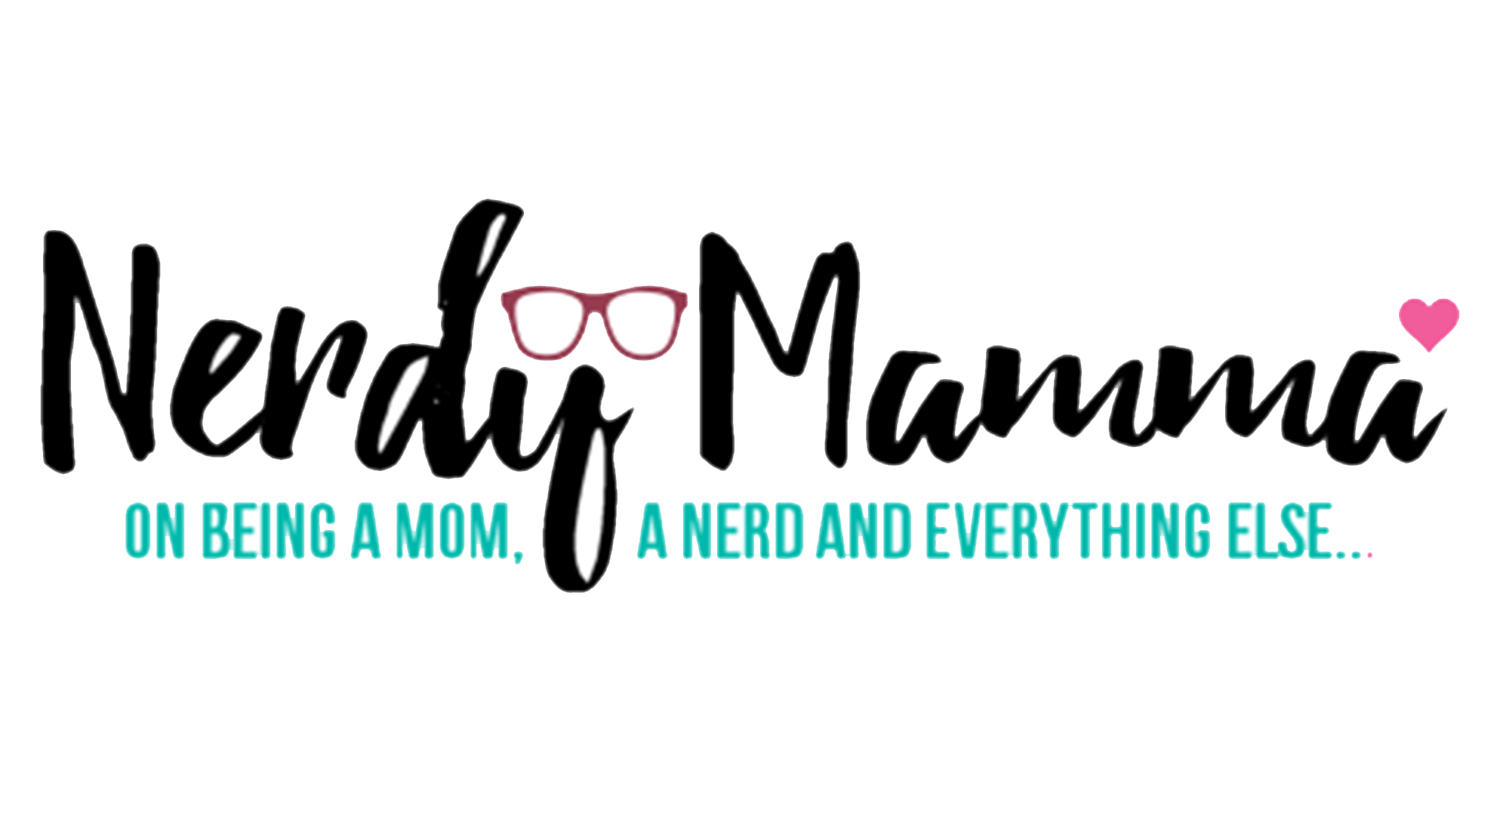 Nerdy Mamma mommy blogs for dads